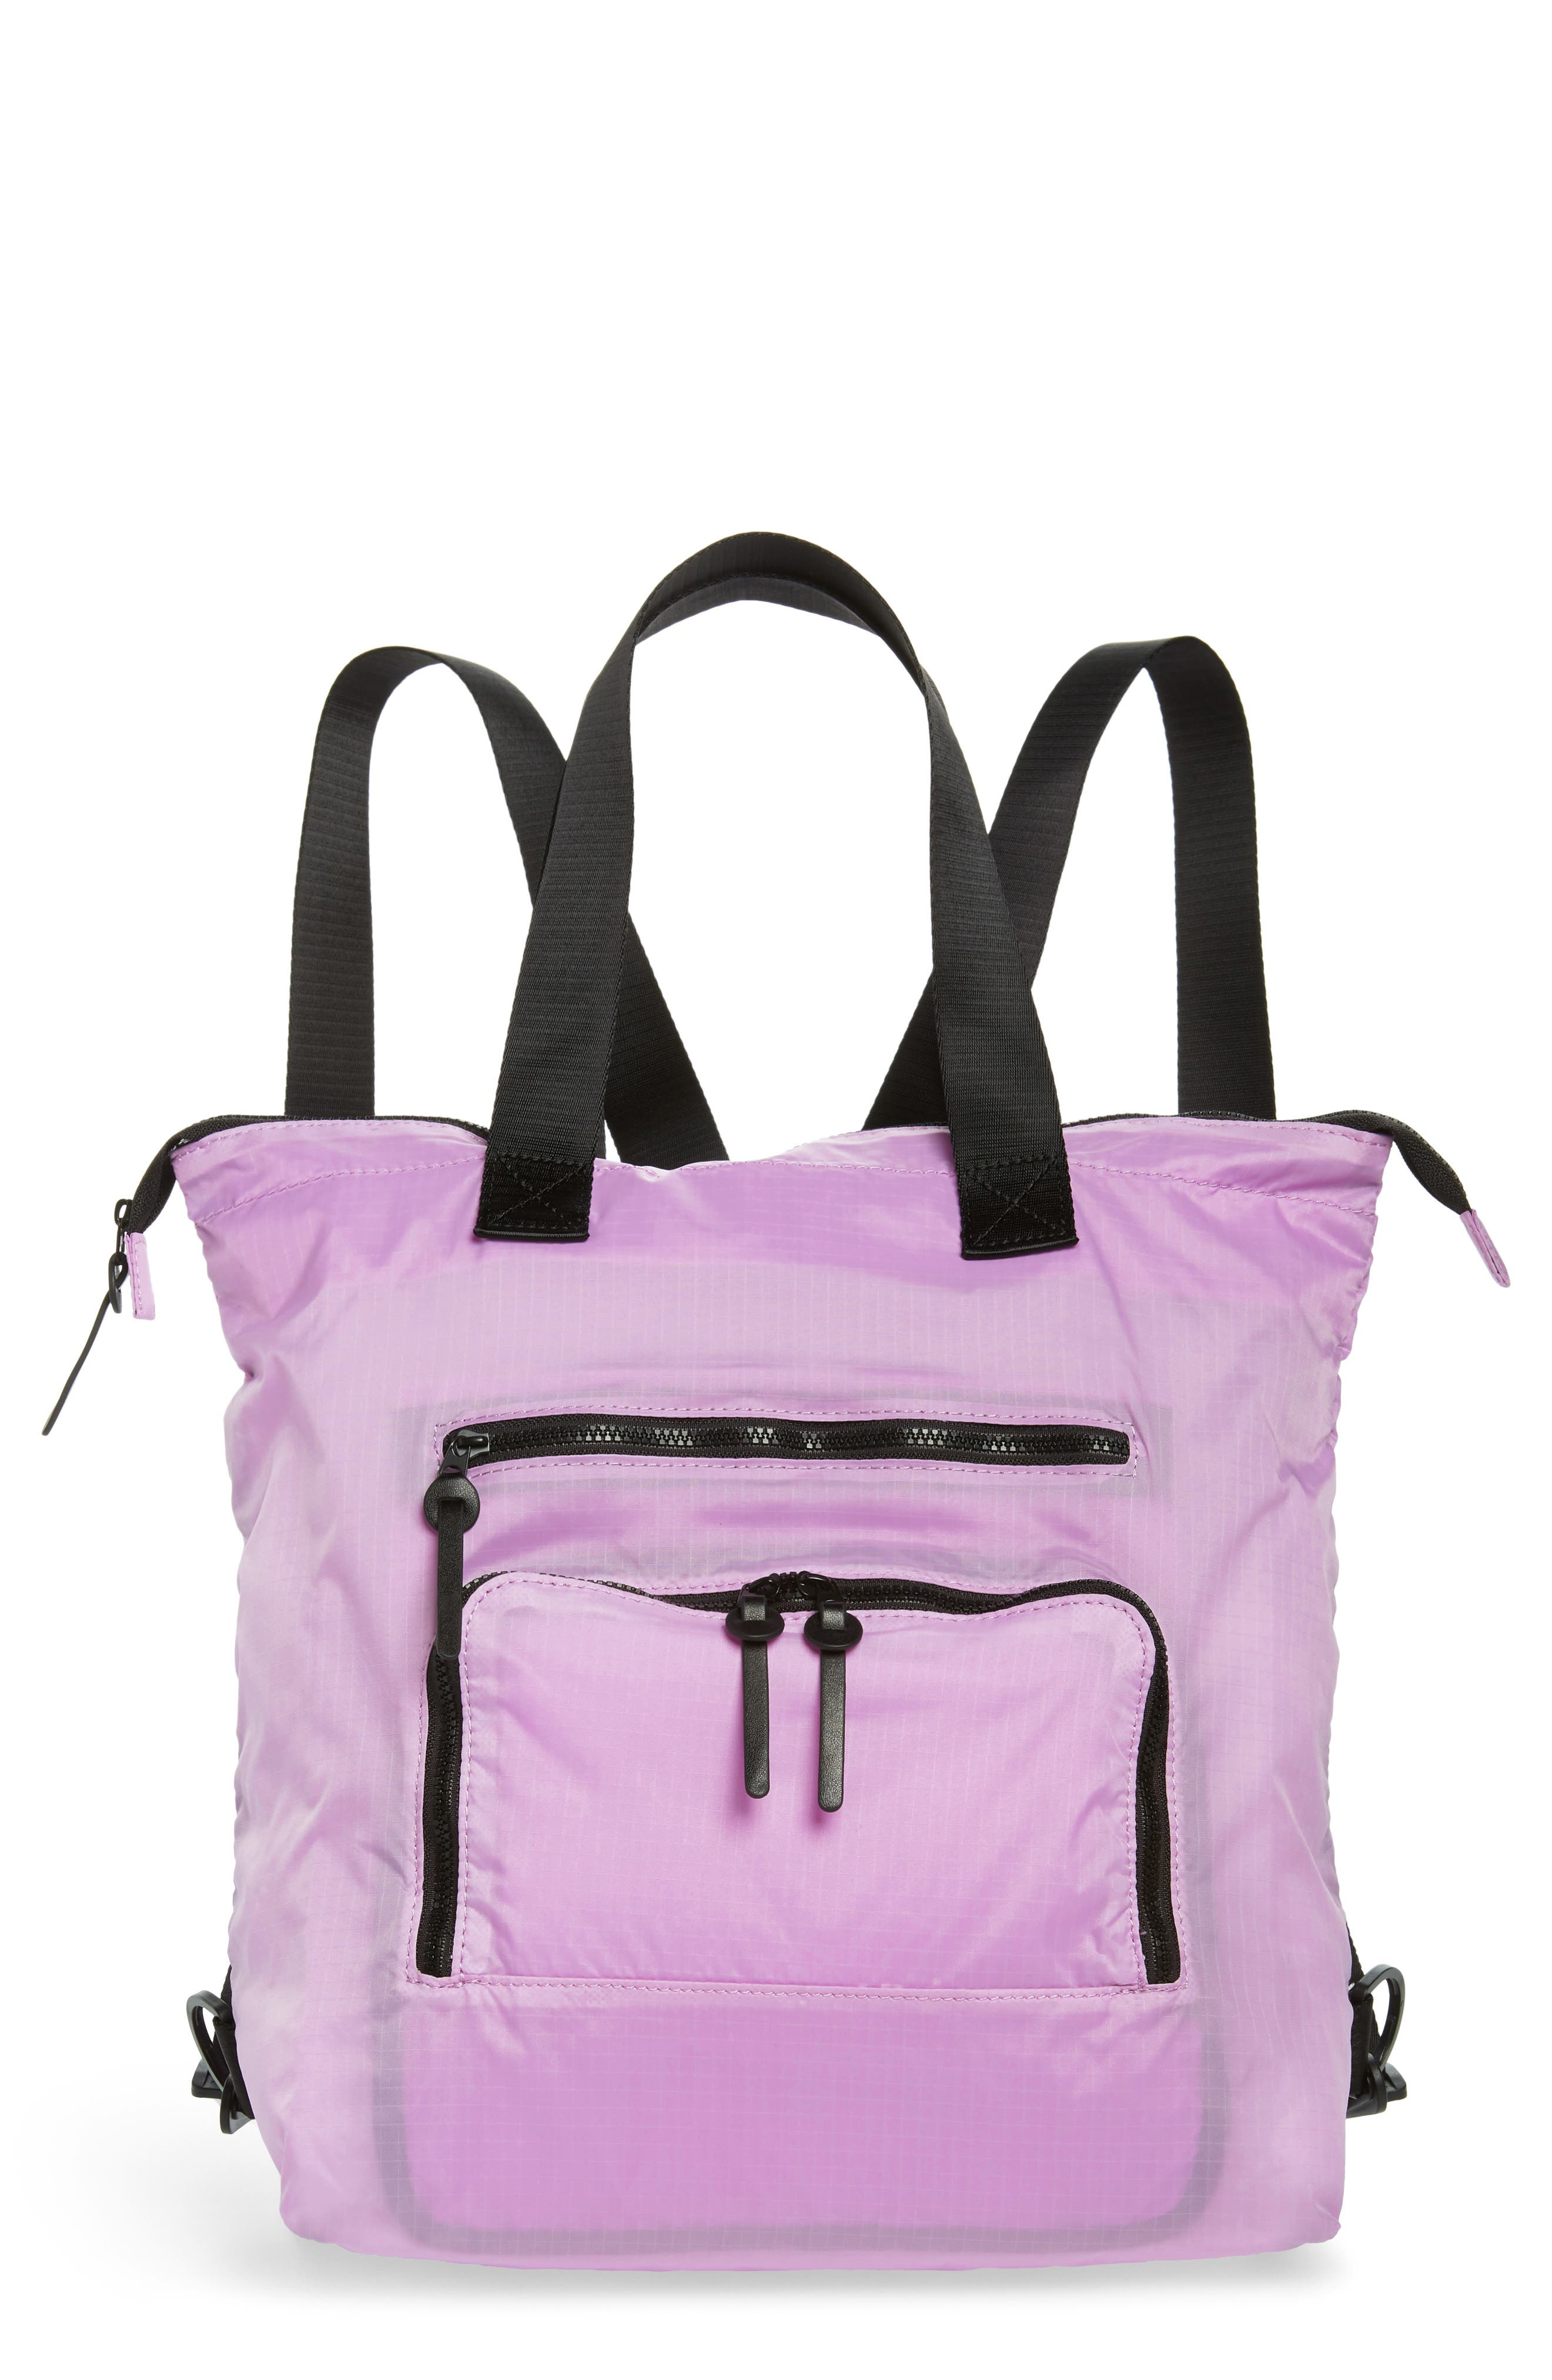 Packable Convertible Backpack by Nordstrom